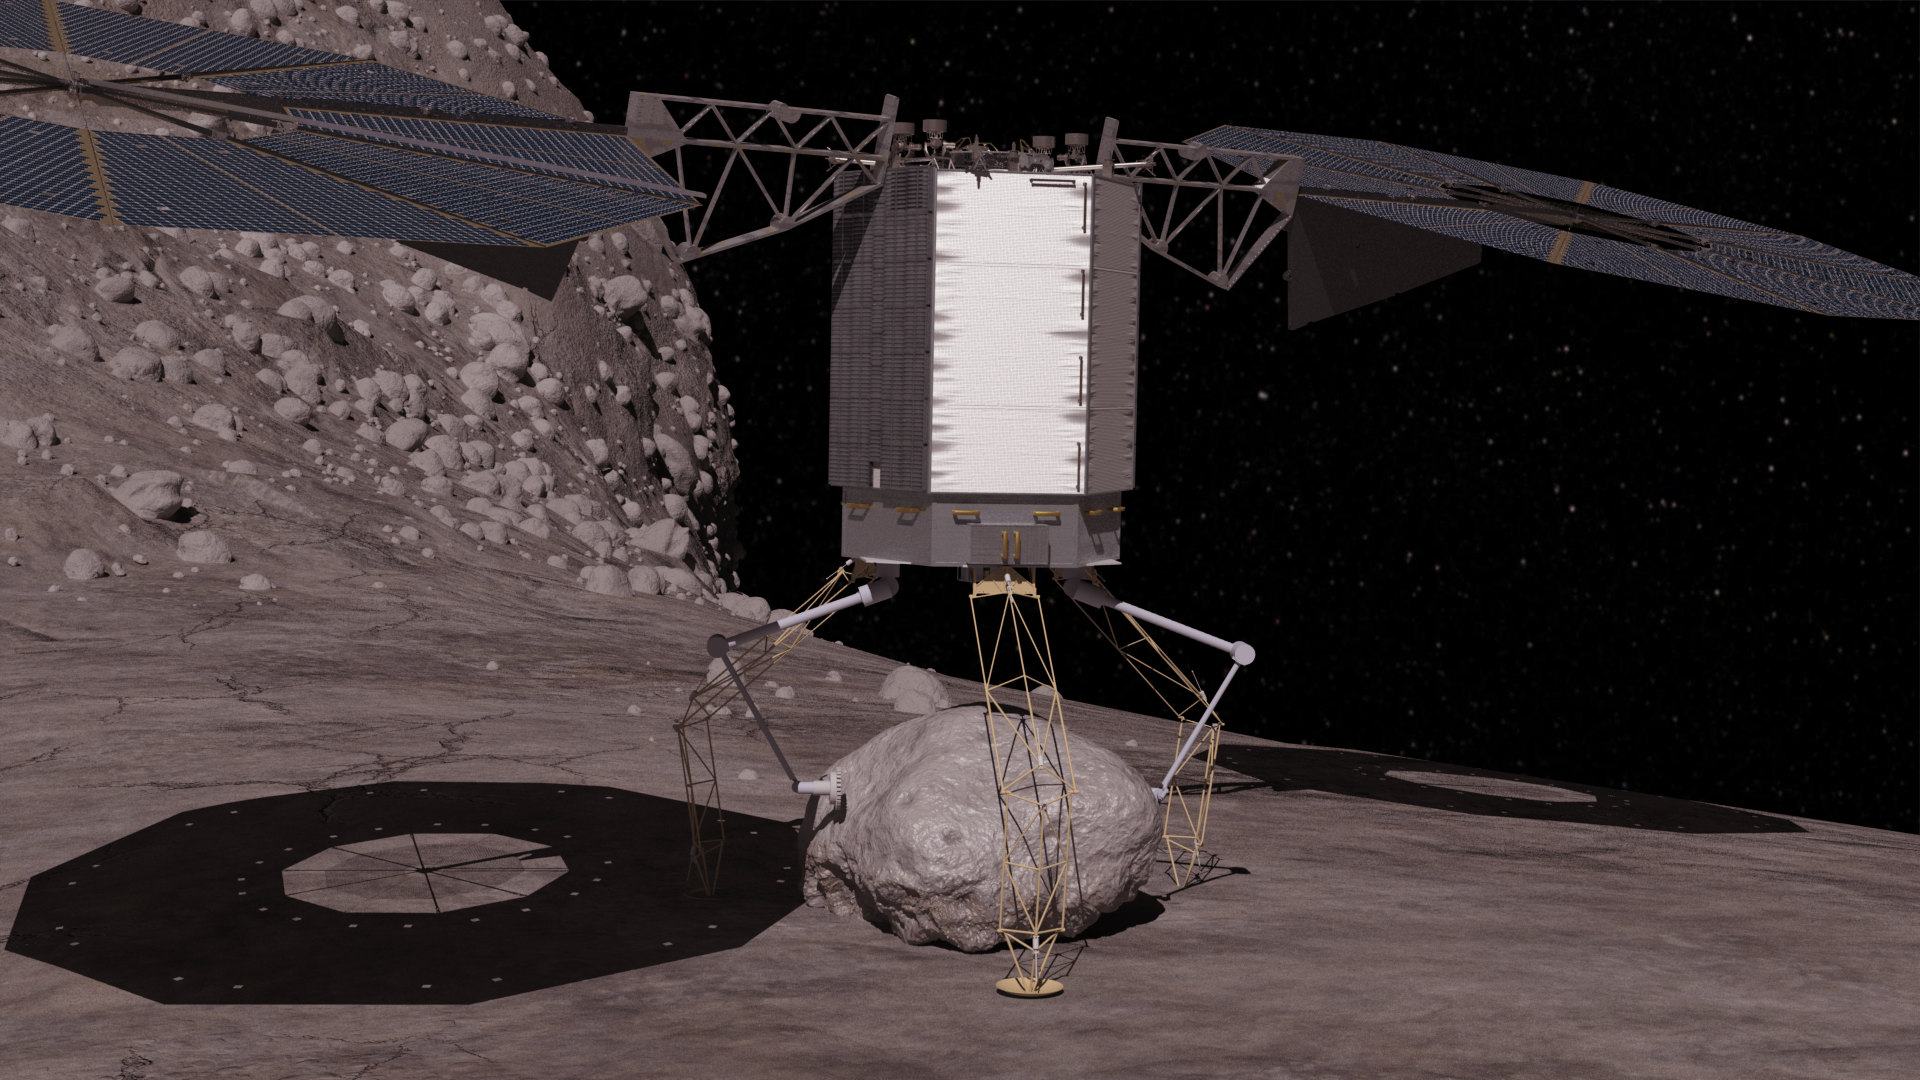 NASA's Asteroid-Capture Mission May Test New Method to Defend Earth